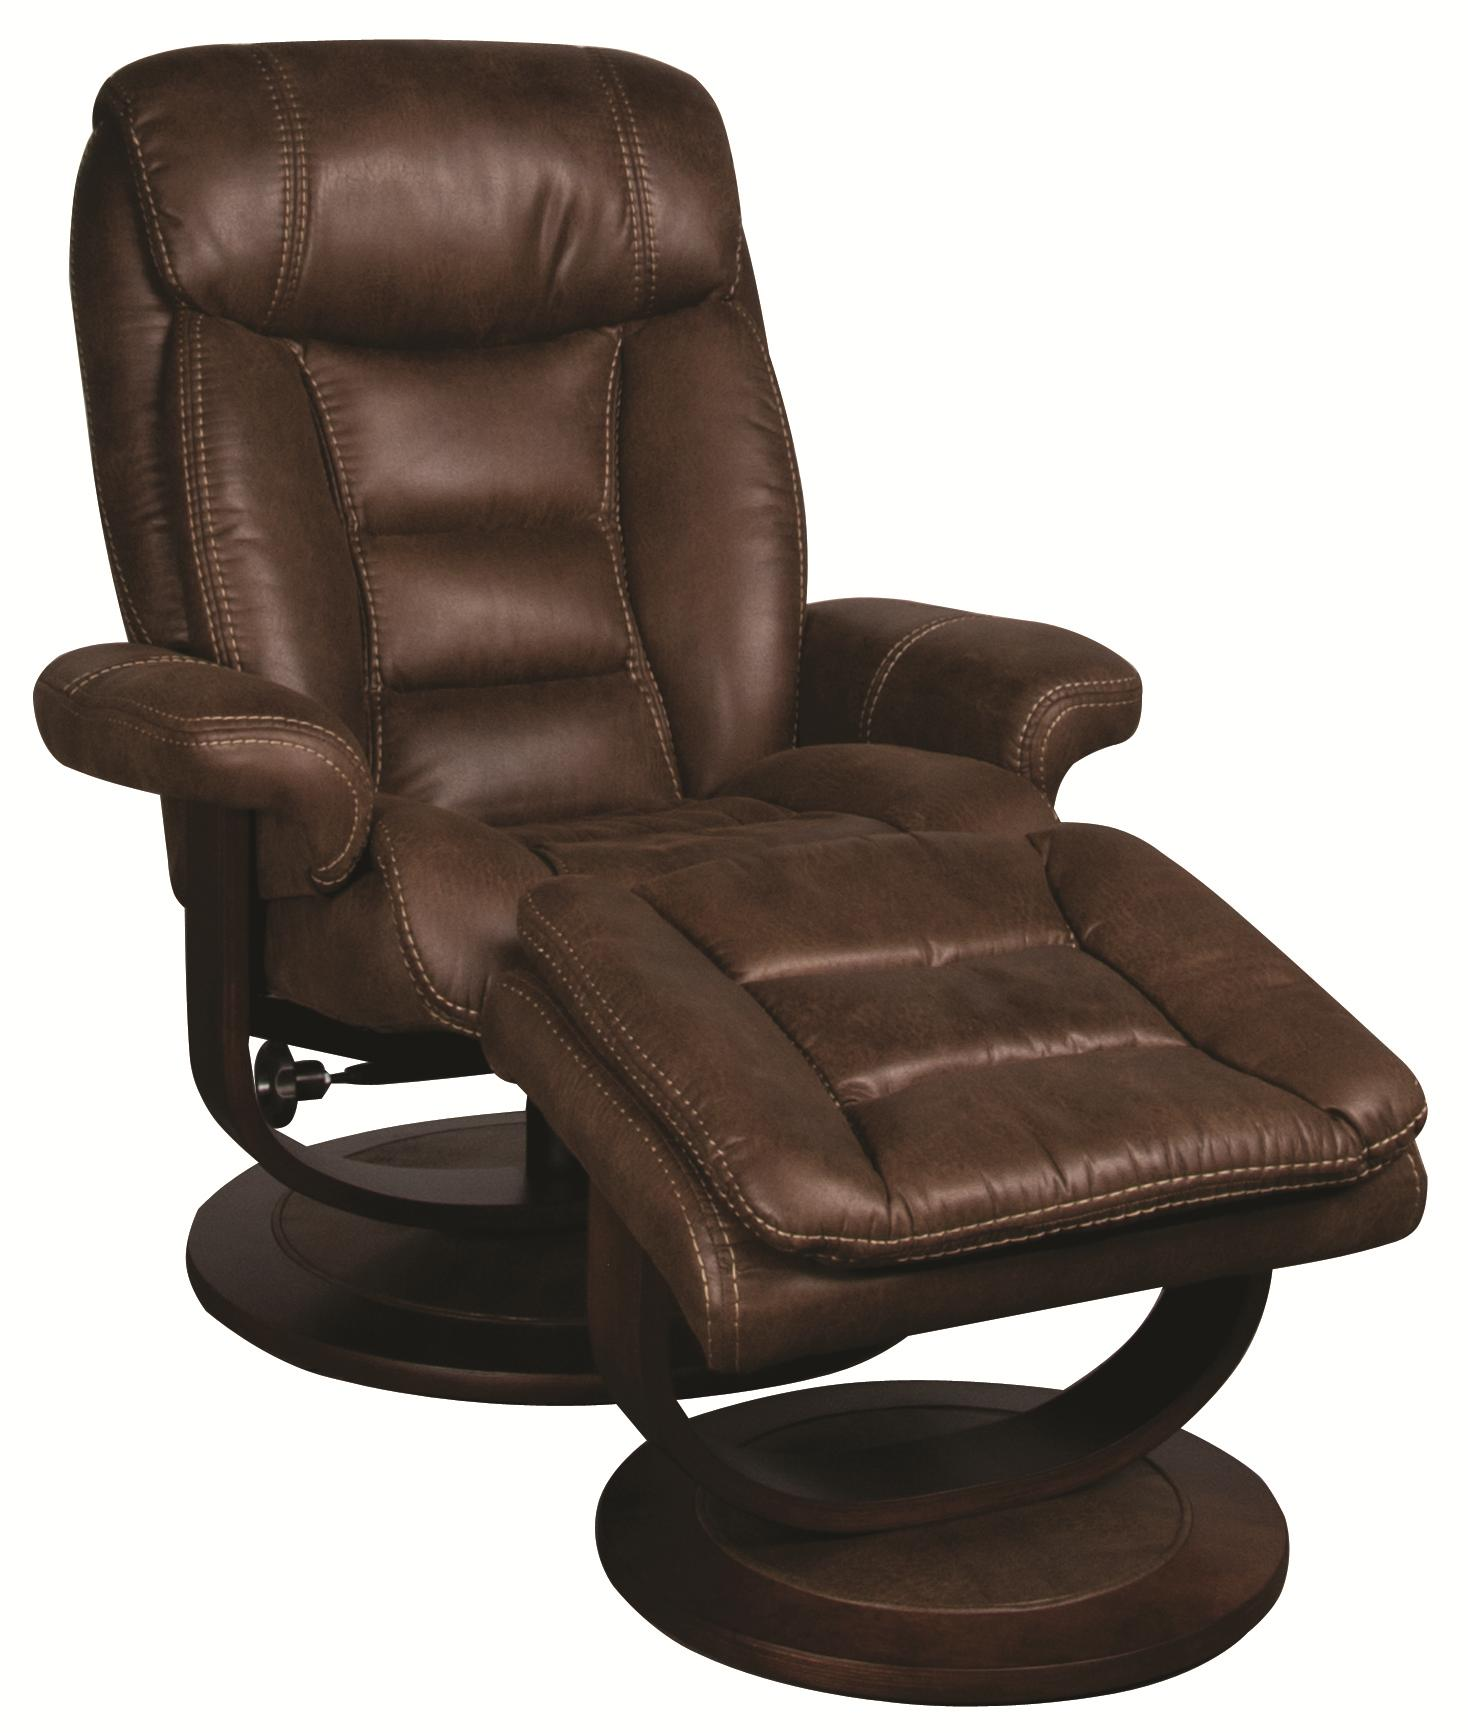 Morris Home Furnishings Manuel Manuel Swivel Recliner with Ottoman - Item Number: 198821502